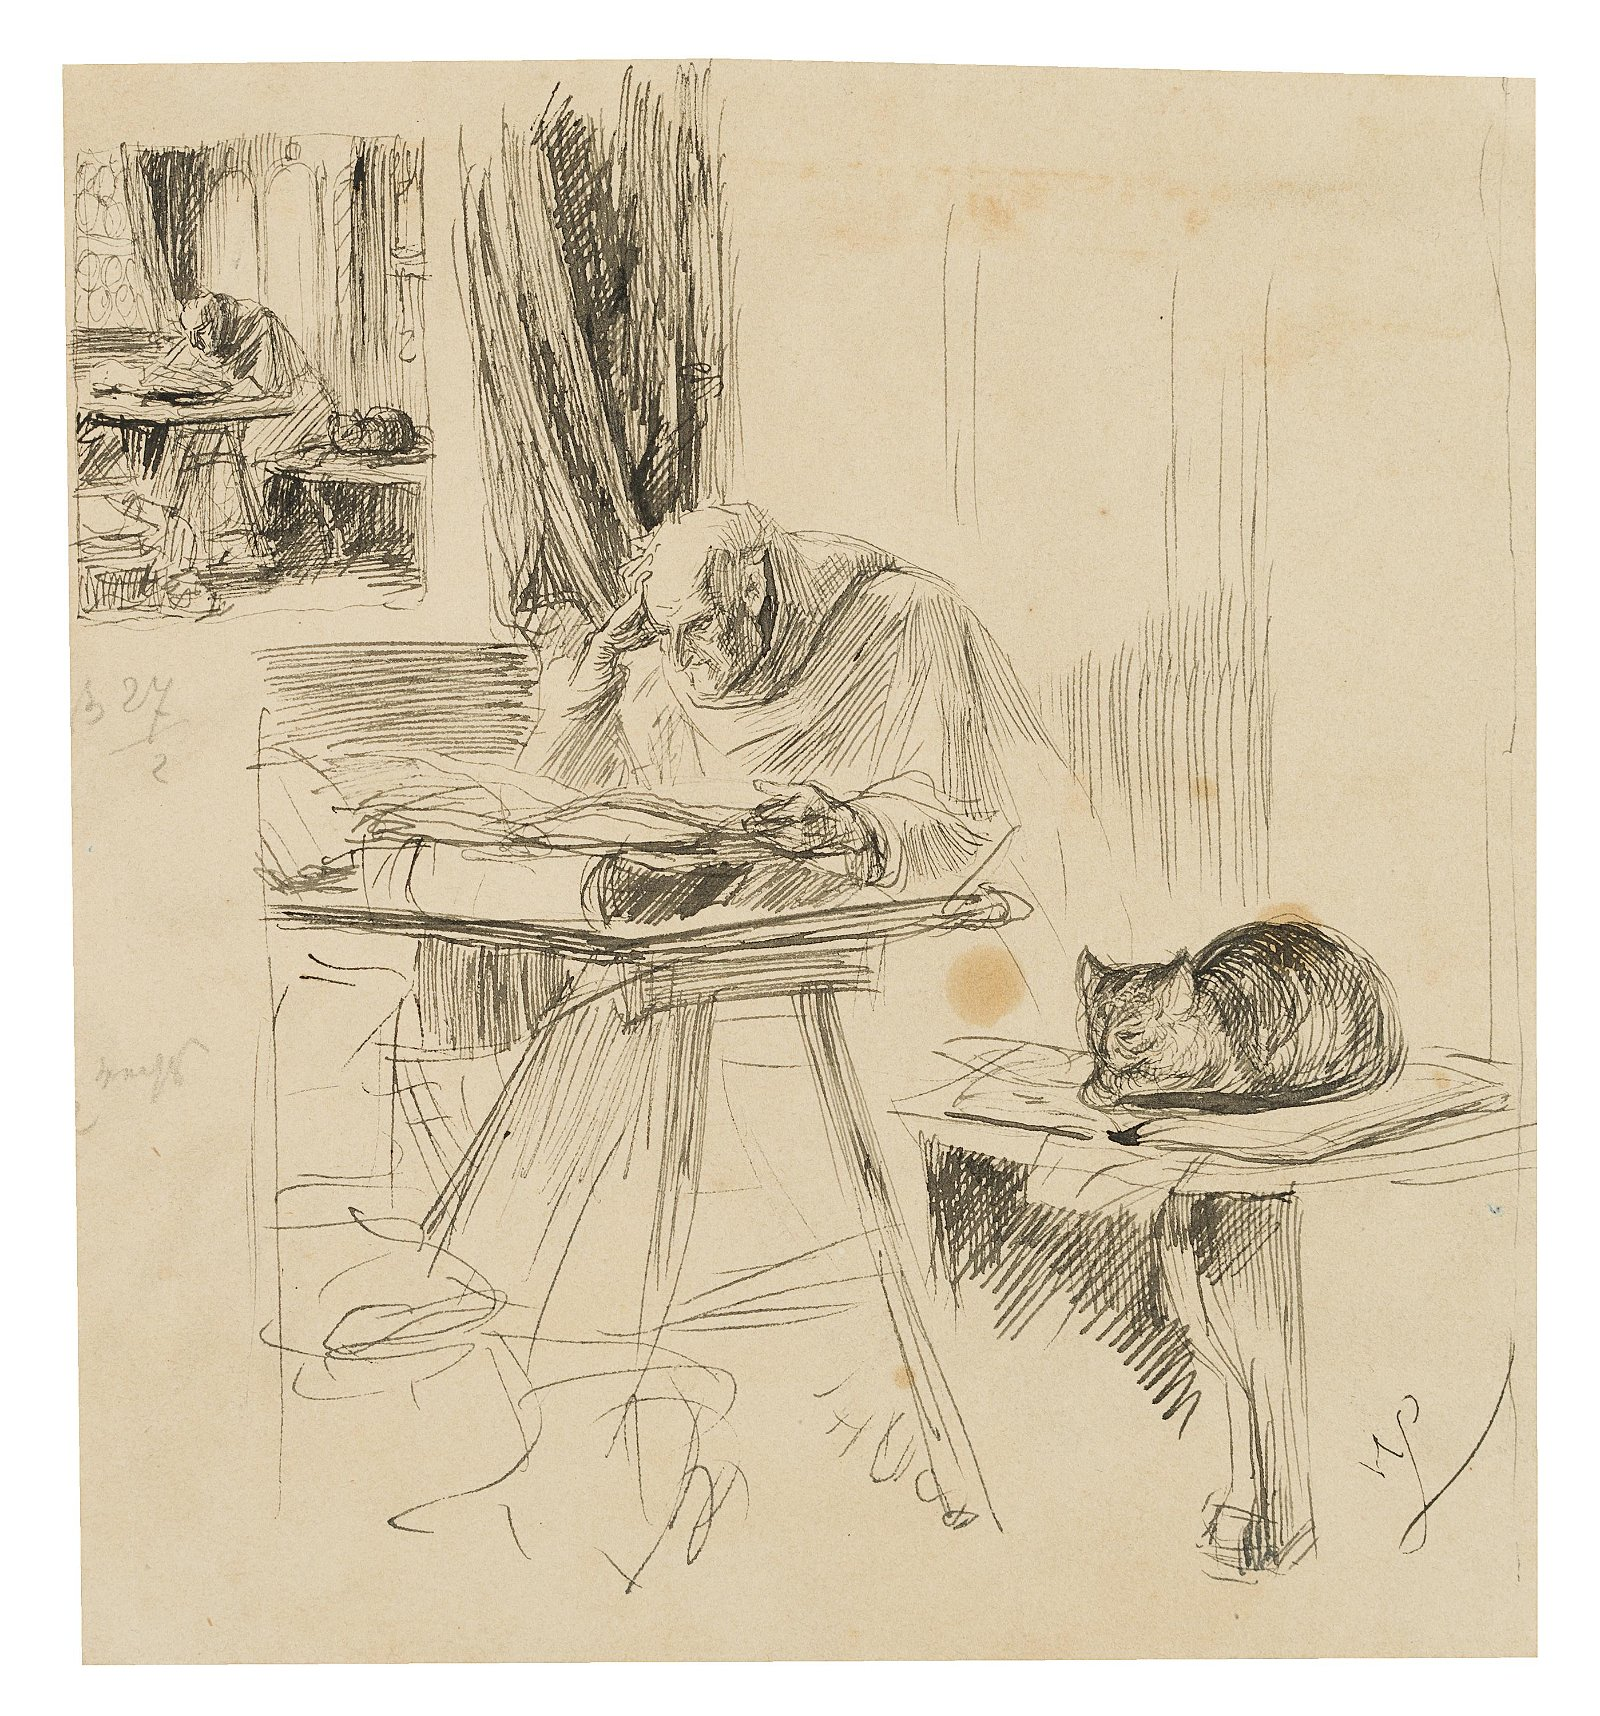 W.LINDENSCHMIT(*1829), Reading monk with cat, 19th